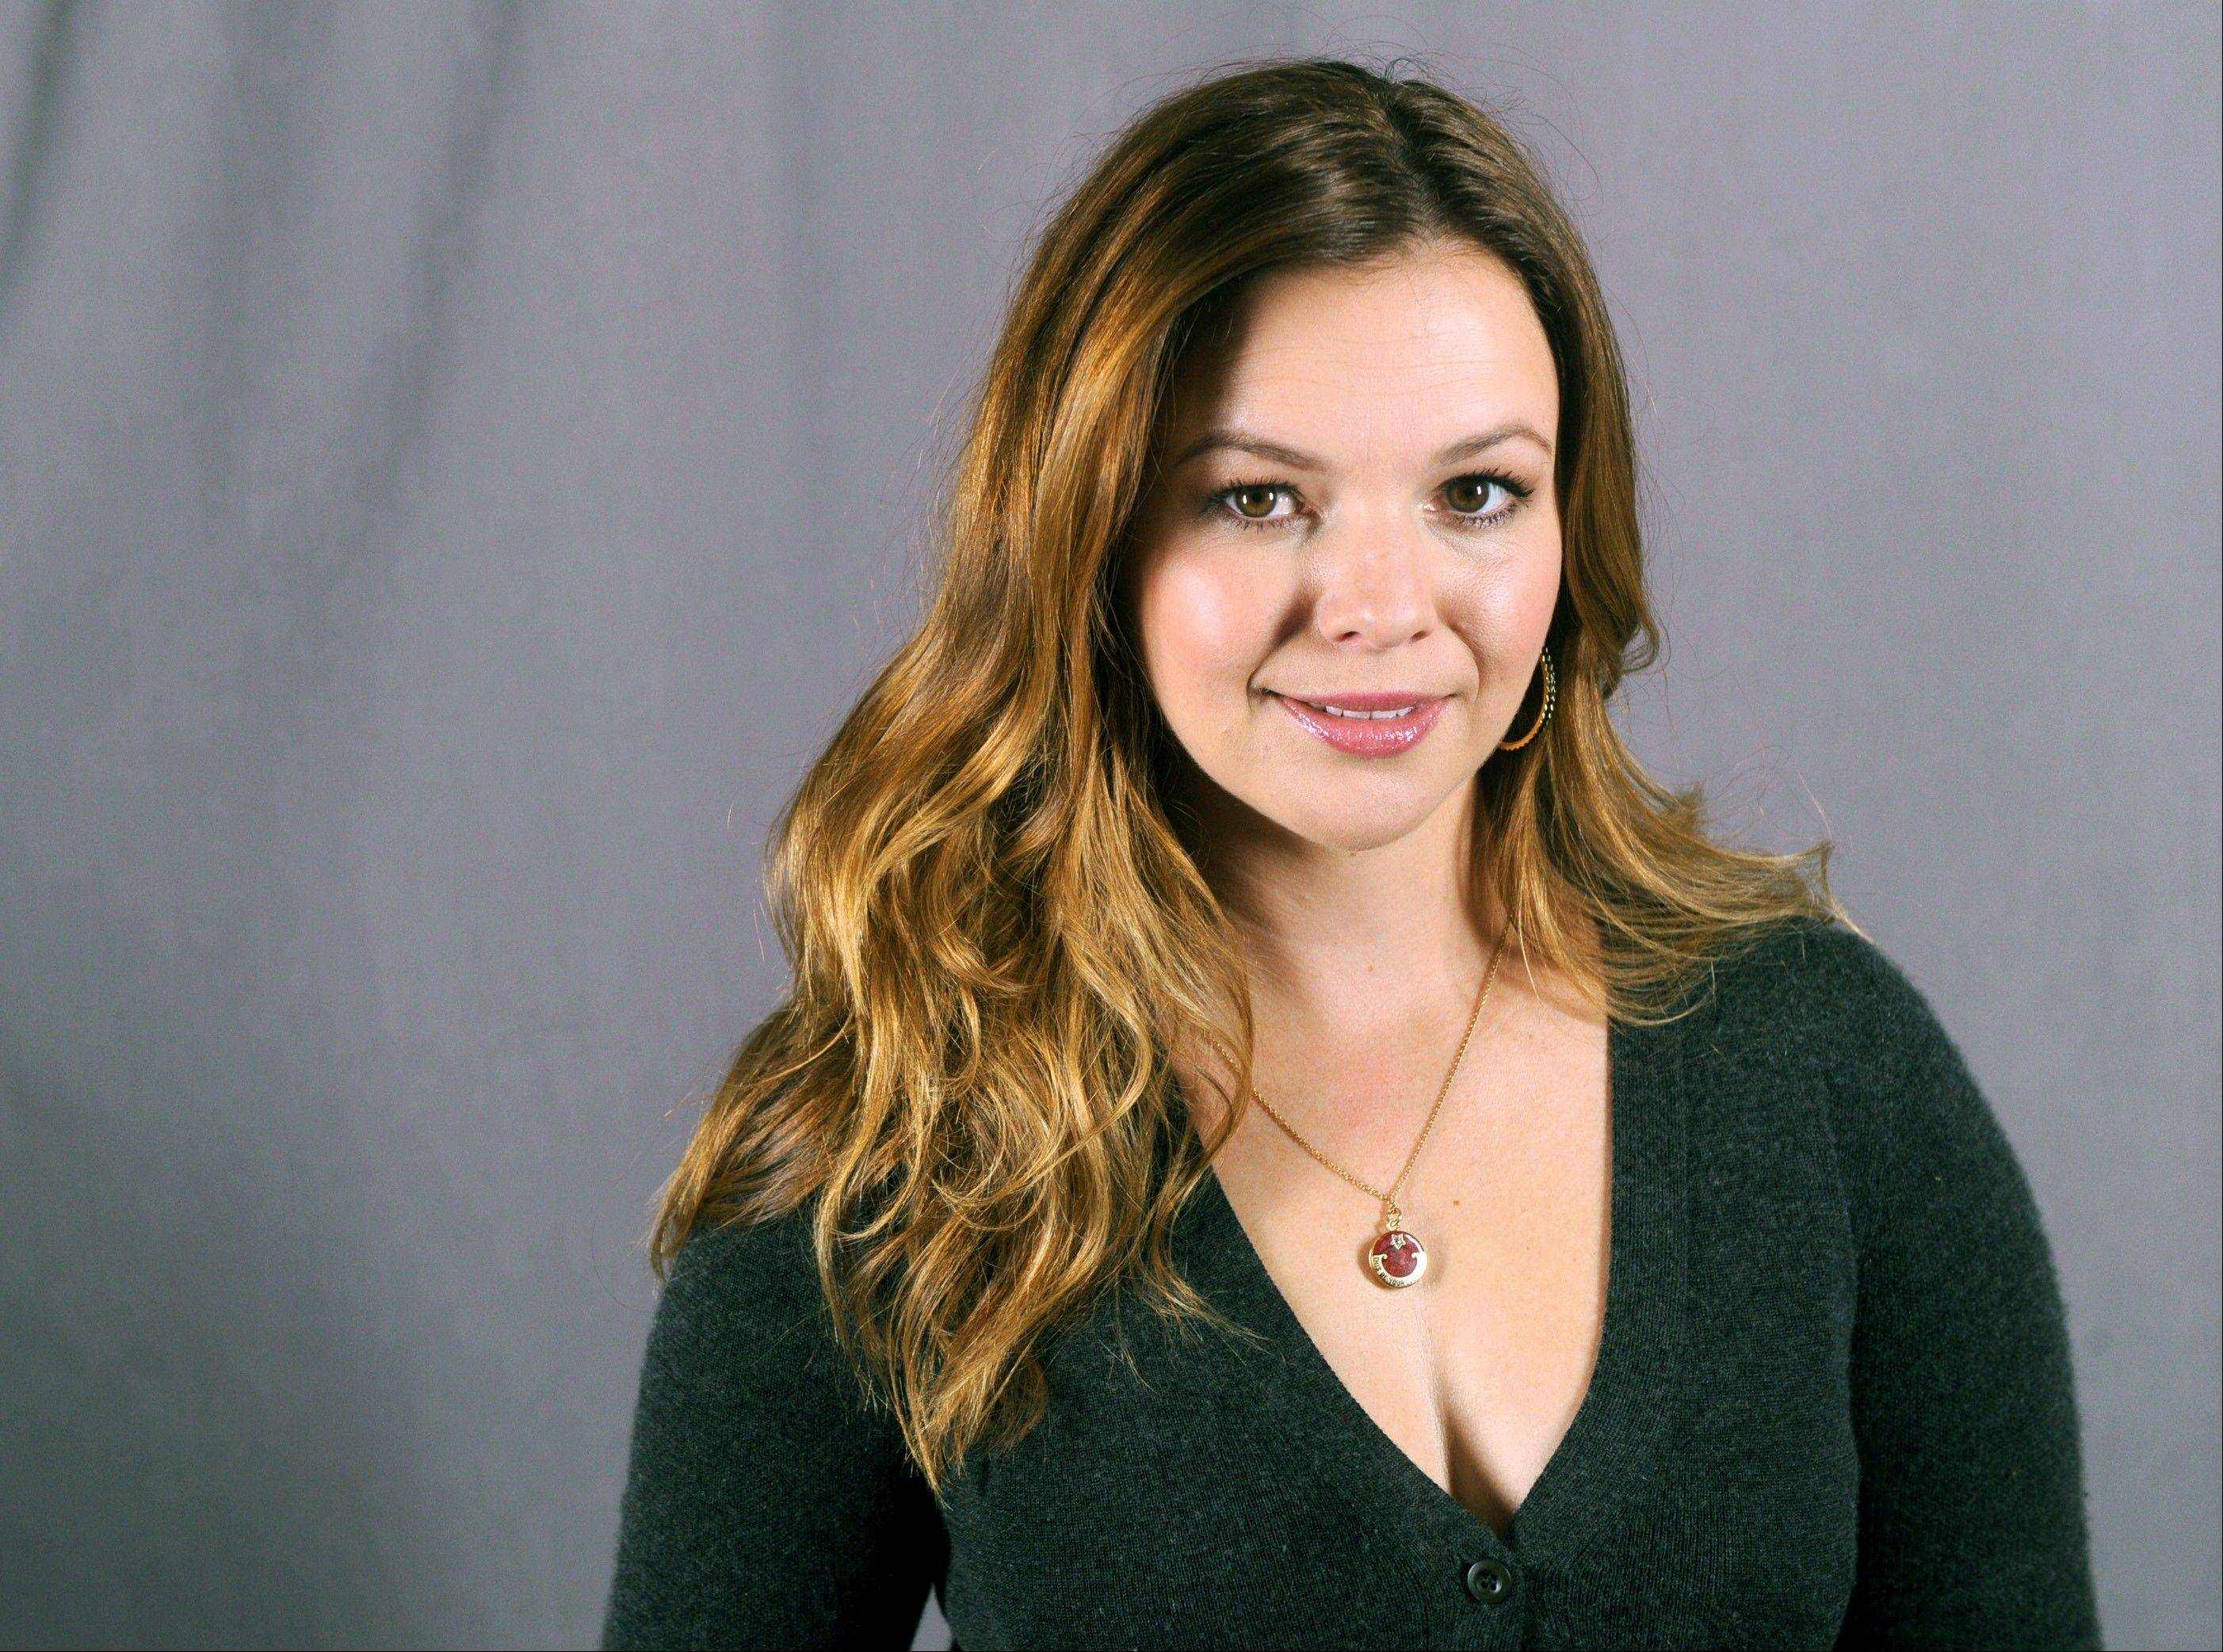 Amber Tamblyn will guest star as Charlie Harper�s daughter in the upcoming season of the comedy series �Two and a Half Men.�